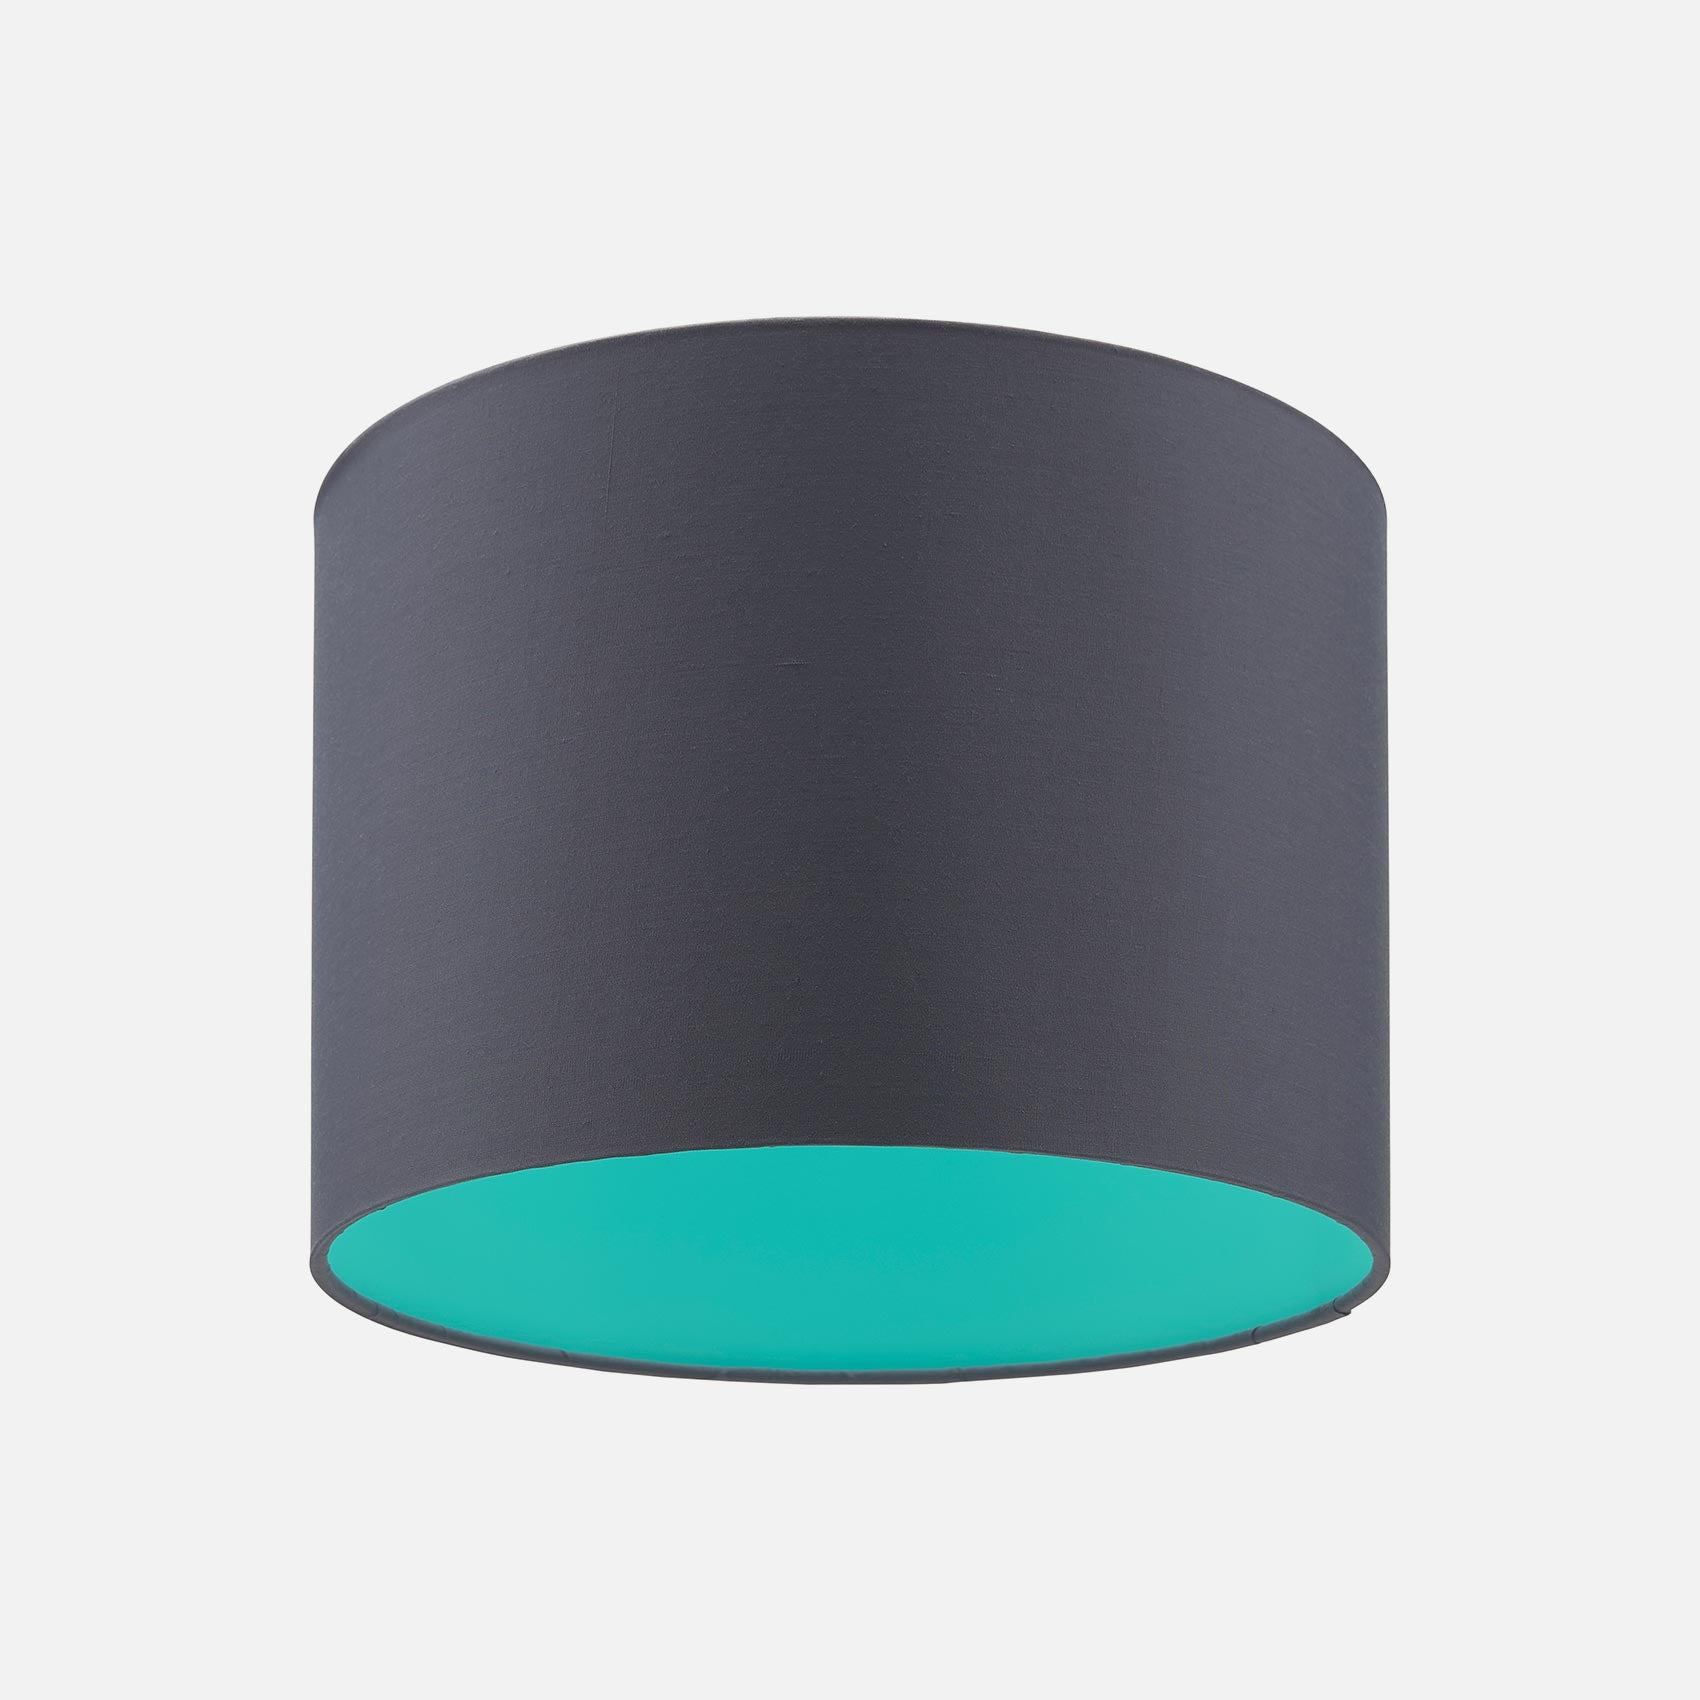 Slate Grey and Mint Green drum lampshade from Pea